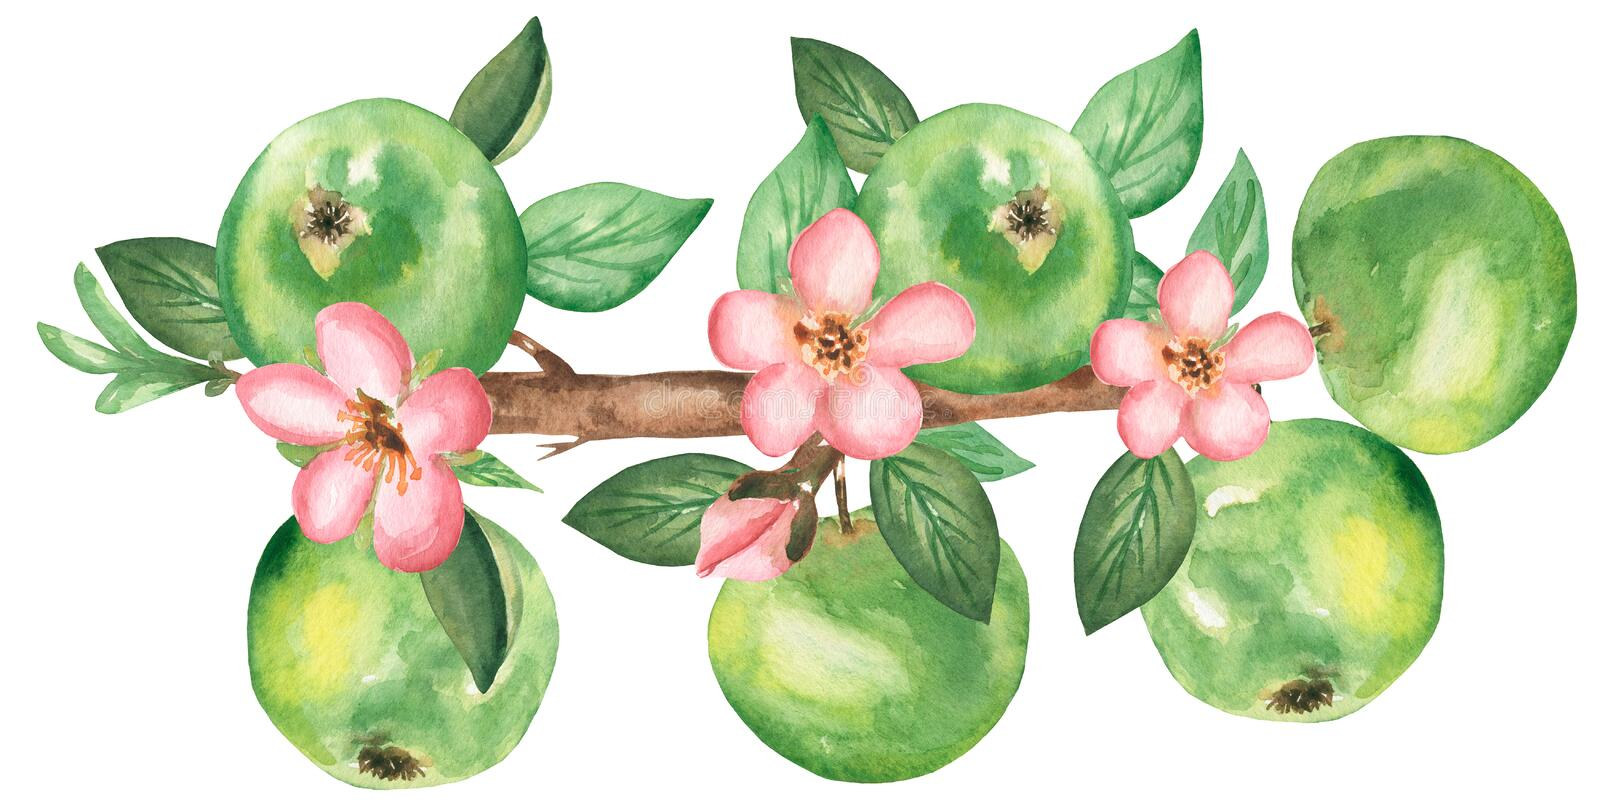 Watercolor hand drawn illustration  with  apple flowers, leaves and green apples on the branch vector illustration